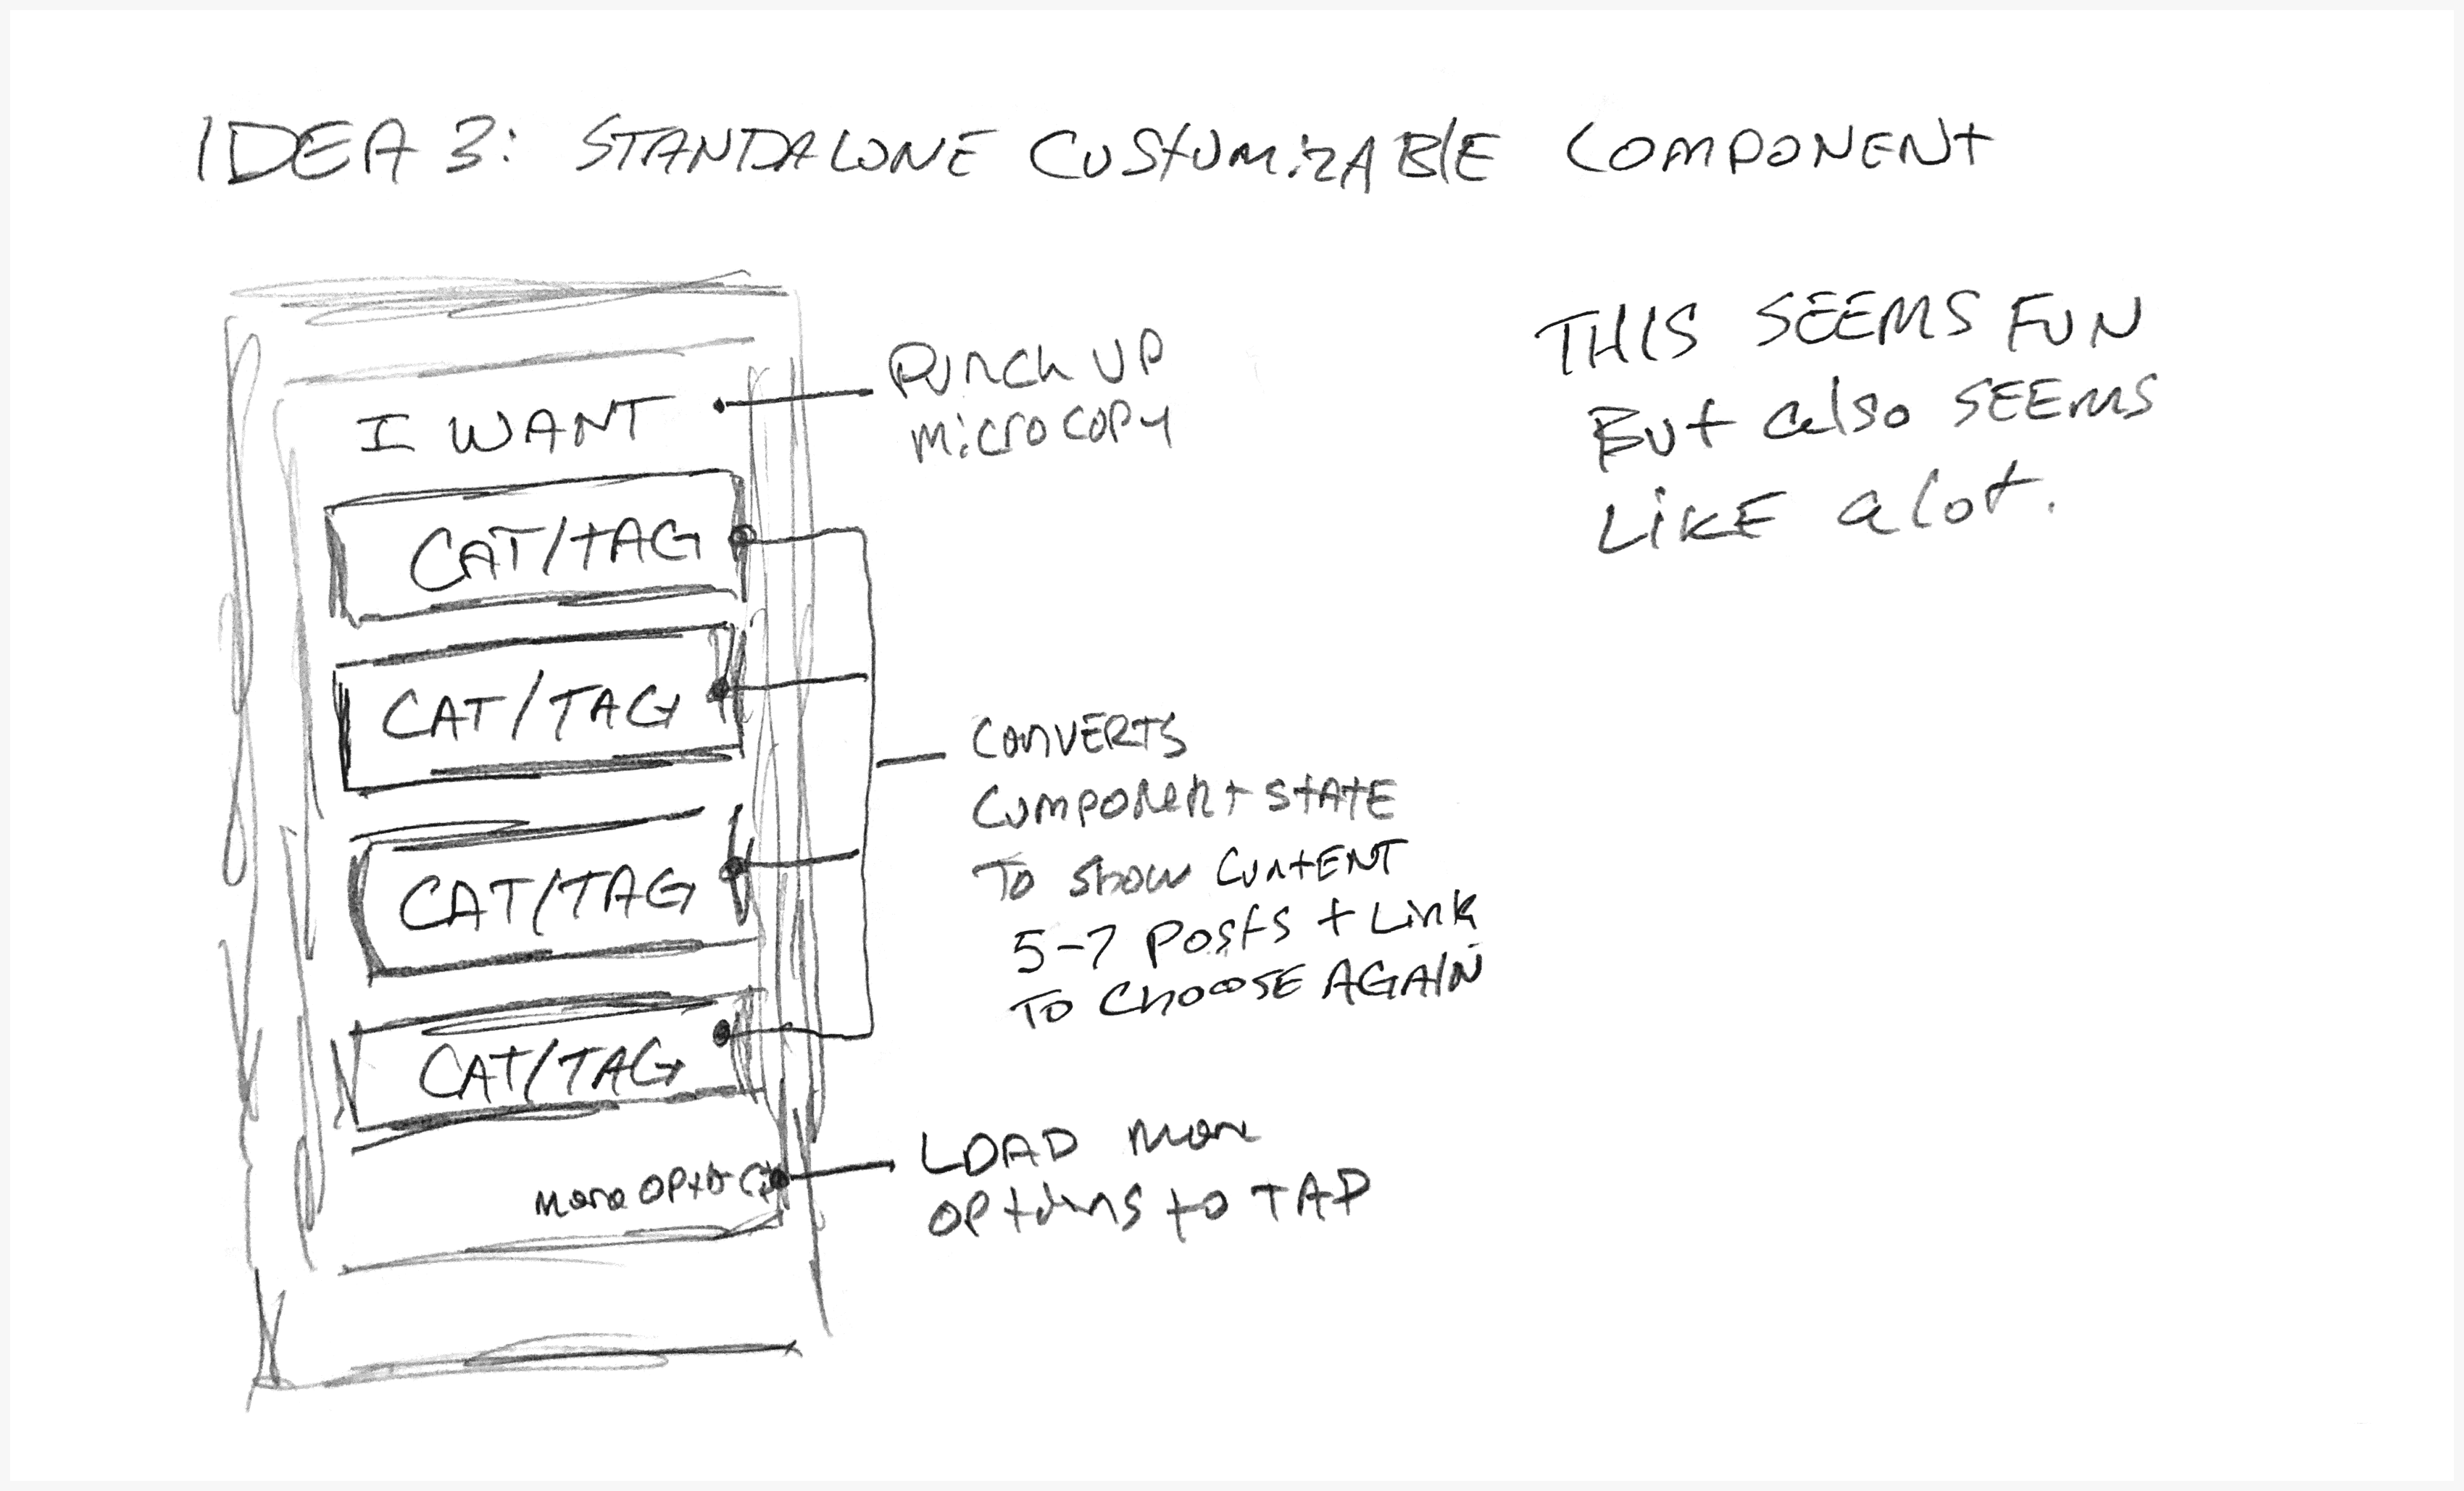 A sketch for a custom content experience with user selectable options